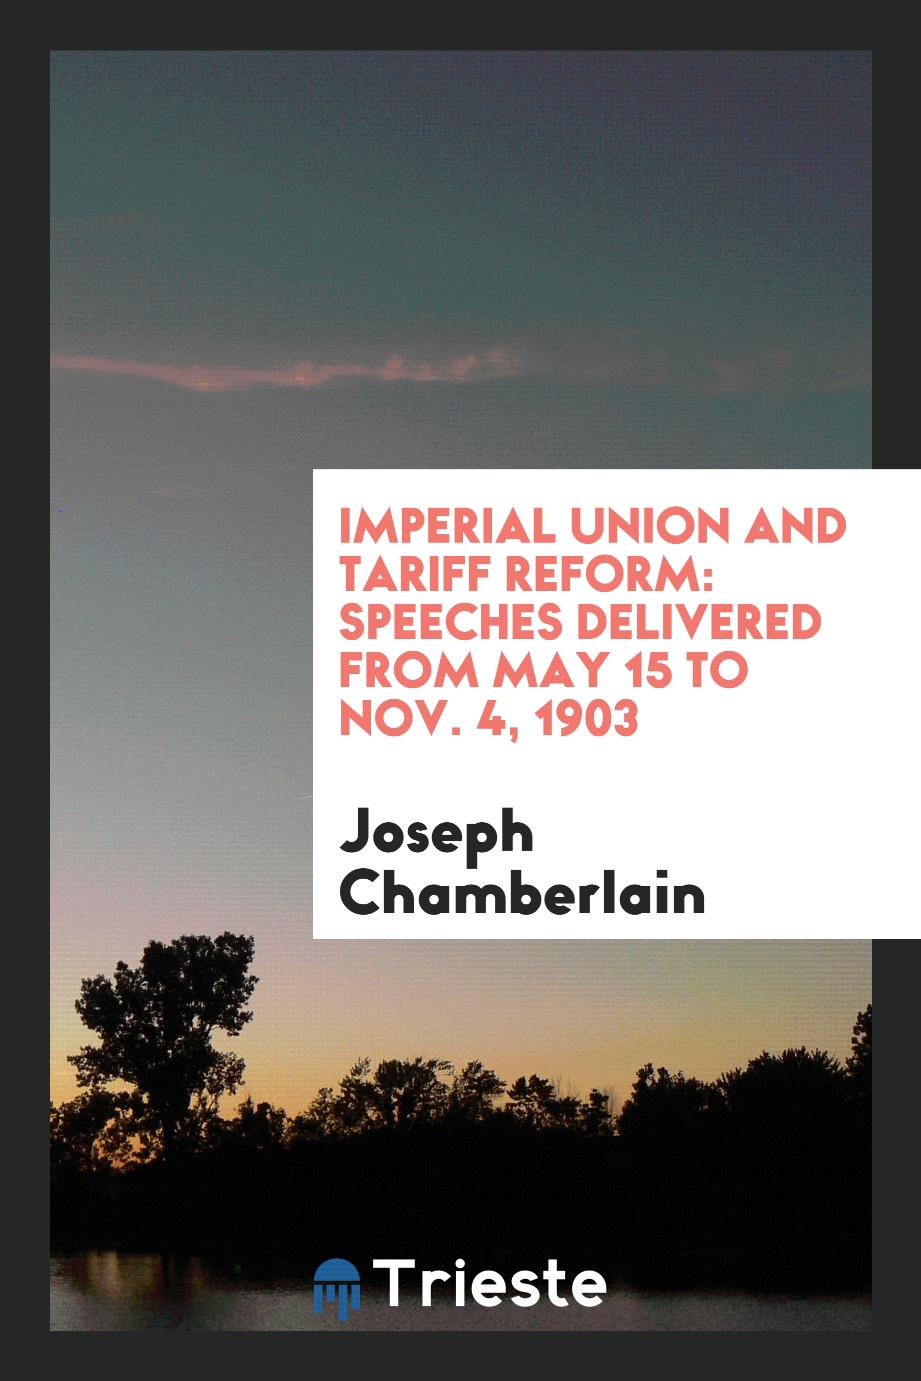 Imperial Union and Tariff Reform: Speeches Delivered from May 15 to Nov. 4, 1903